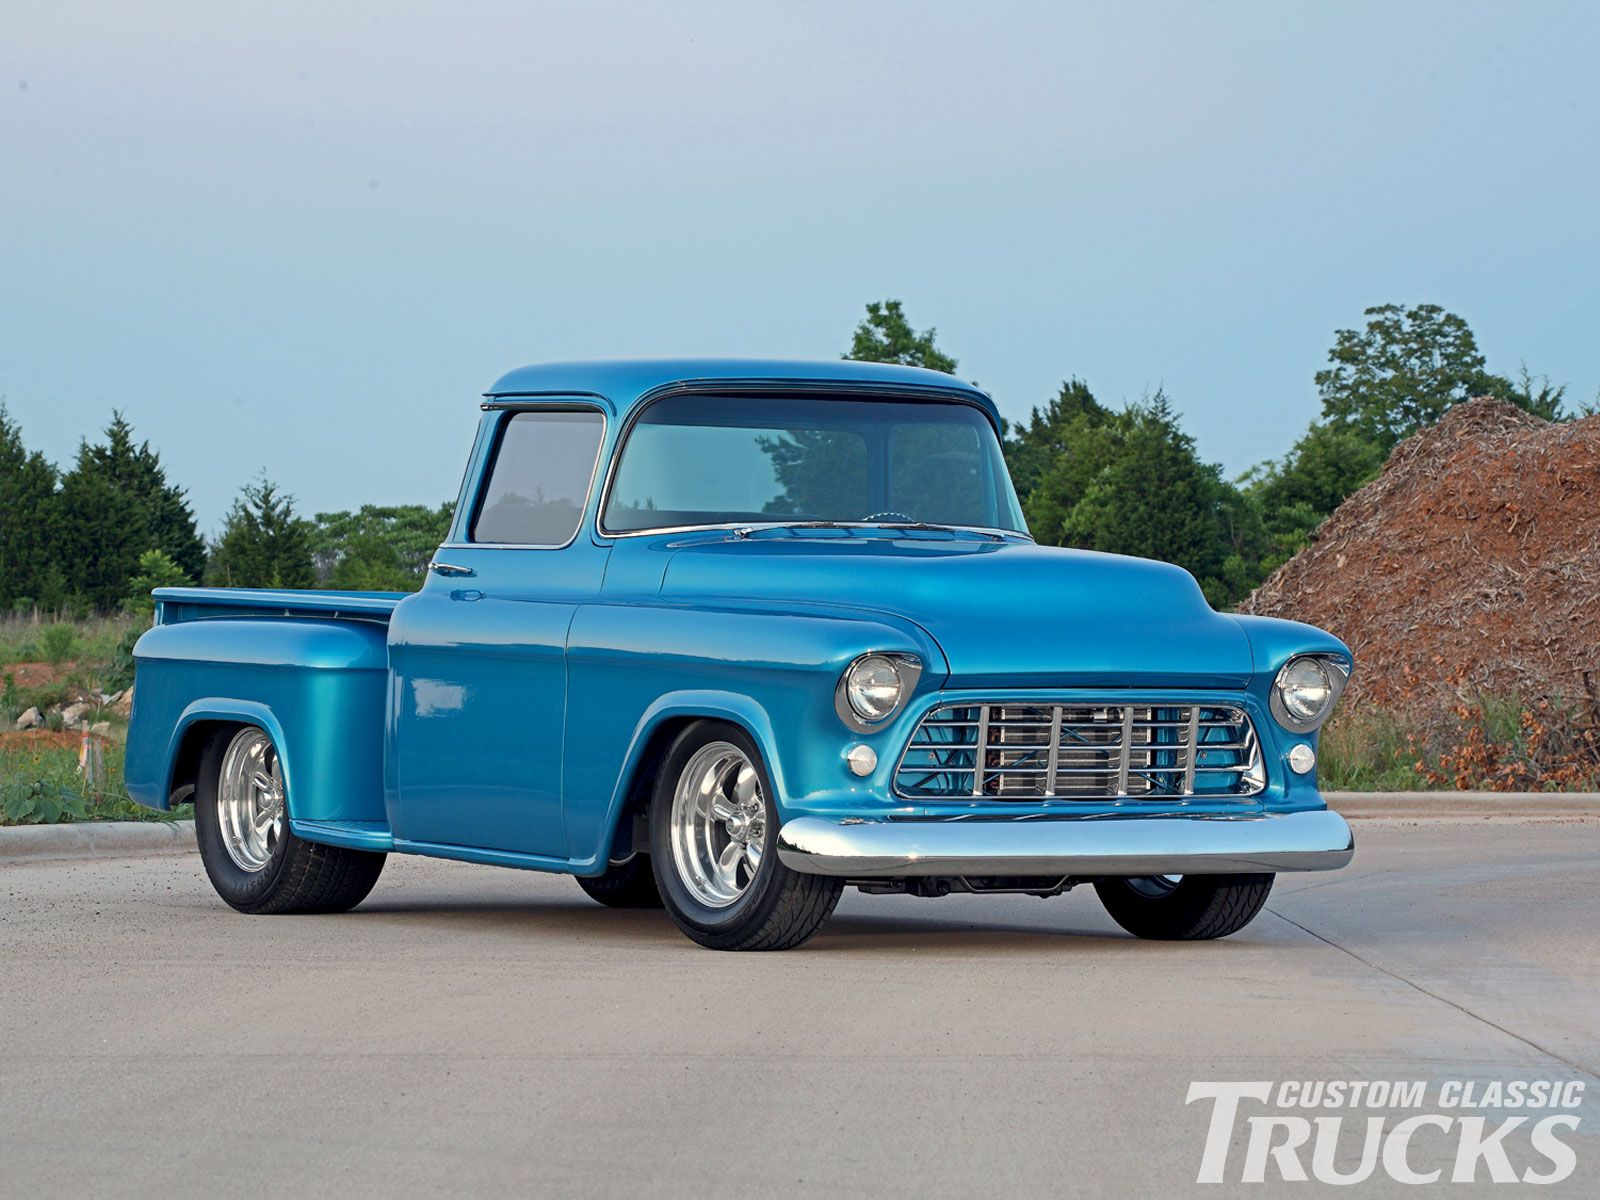 1955 chevrolet hot rod truck pictures to pin on pinterest - 1956 Chevy Pickup Truck Front Bumper Photo 1